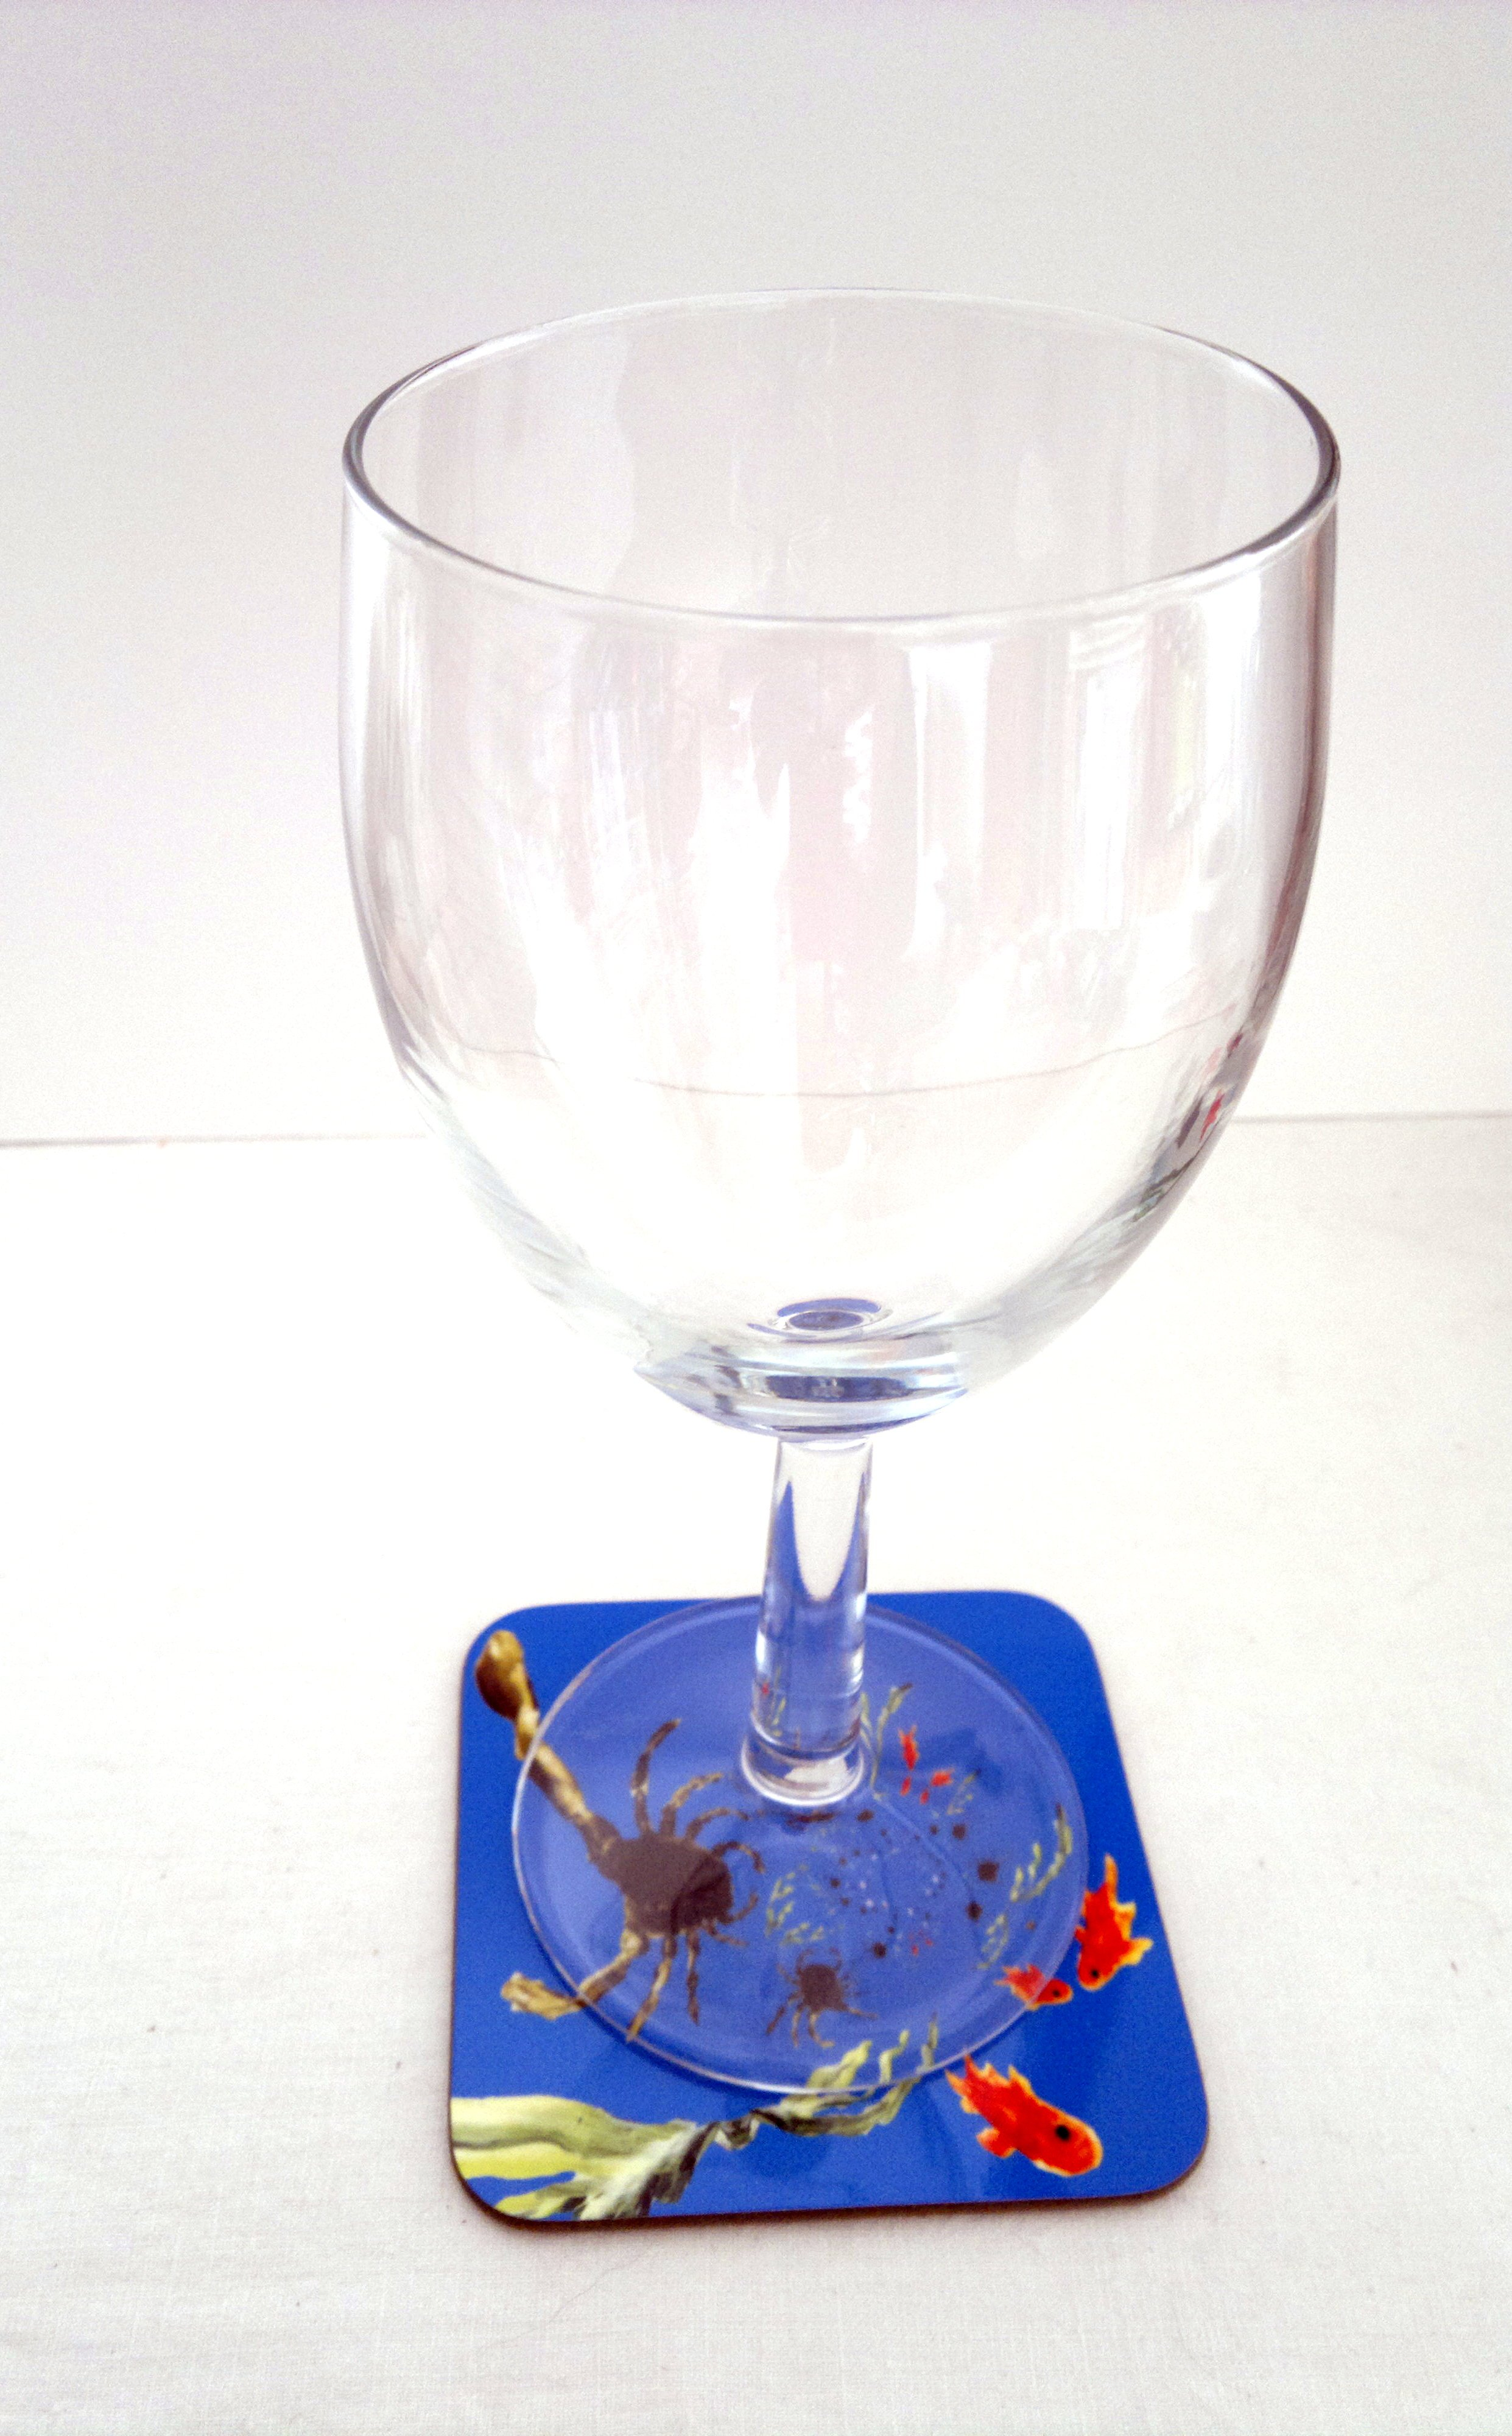 Crab coaster in an abstract style photographed with a wine glass